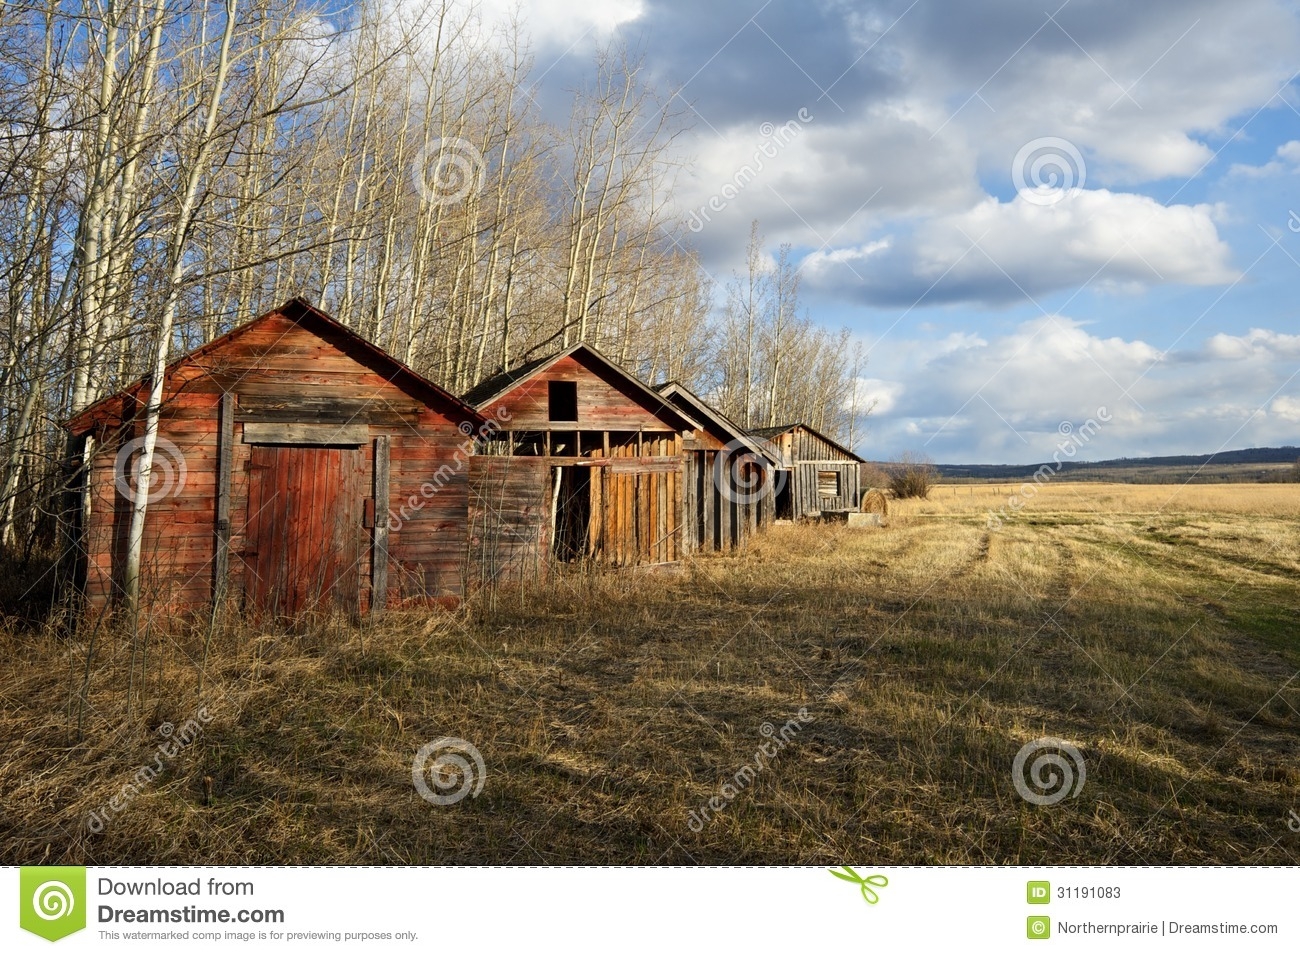 Sheds And Barns Of Old Barns And Sheds Stock Image Image Of Empty Ancient